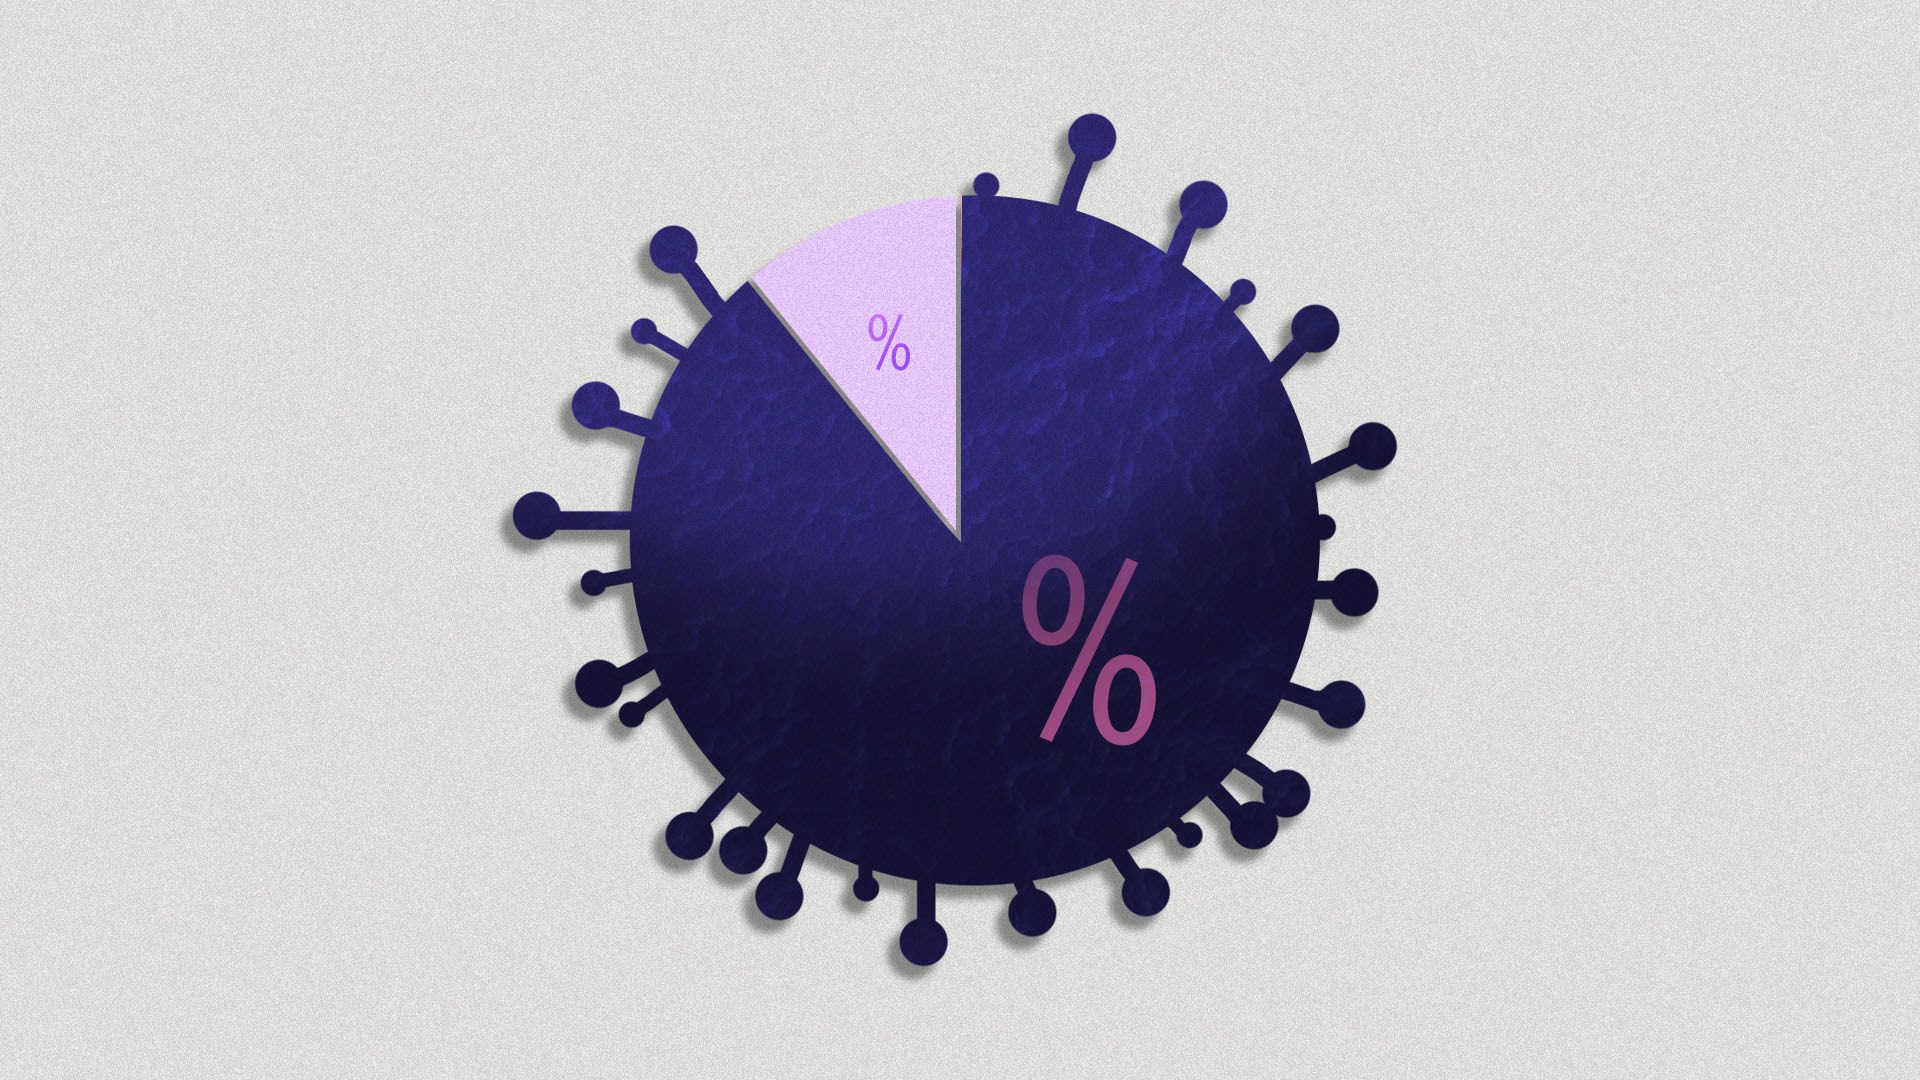 Illustration of a pie chart with two slices, with the bigger slice shaped as a virus